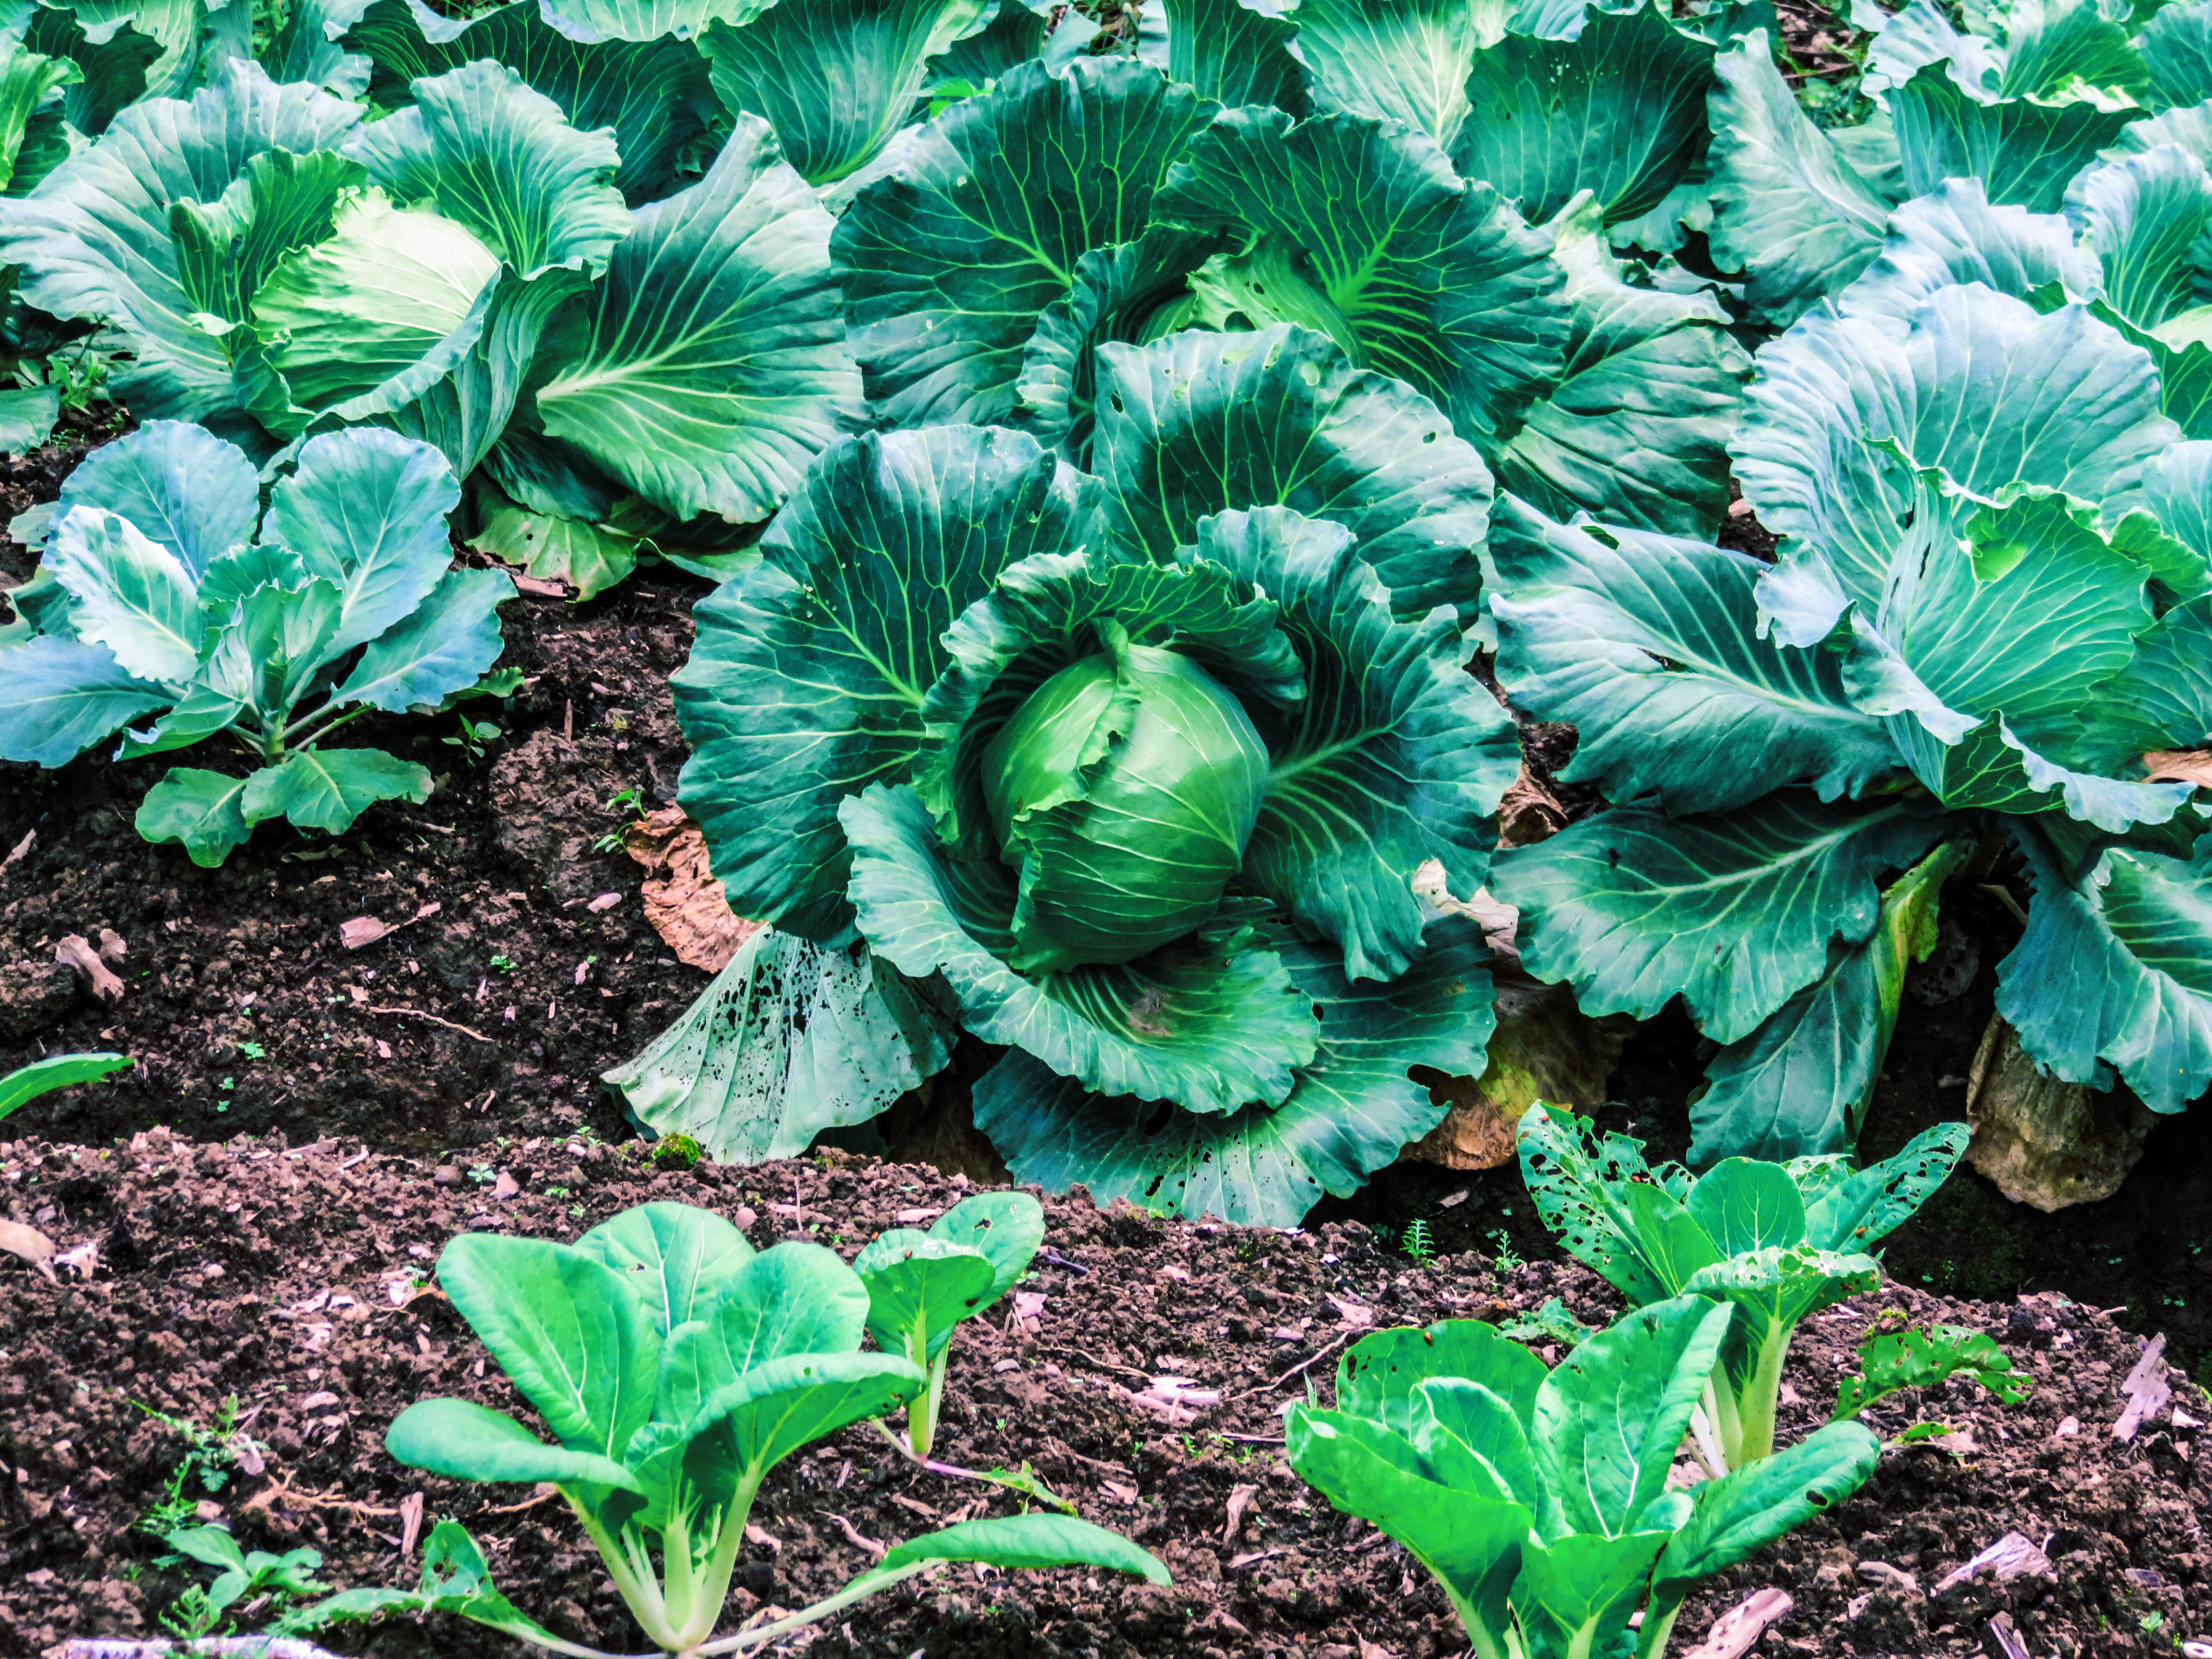 Misima cabbage plots by Jerad_edited2